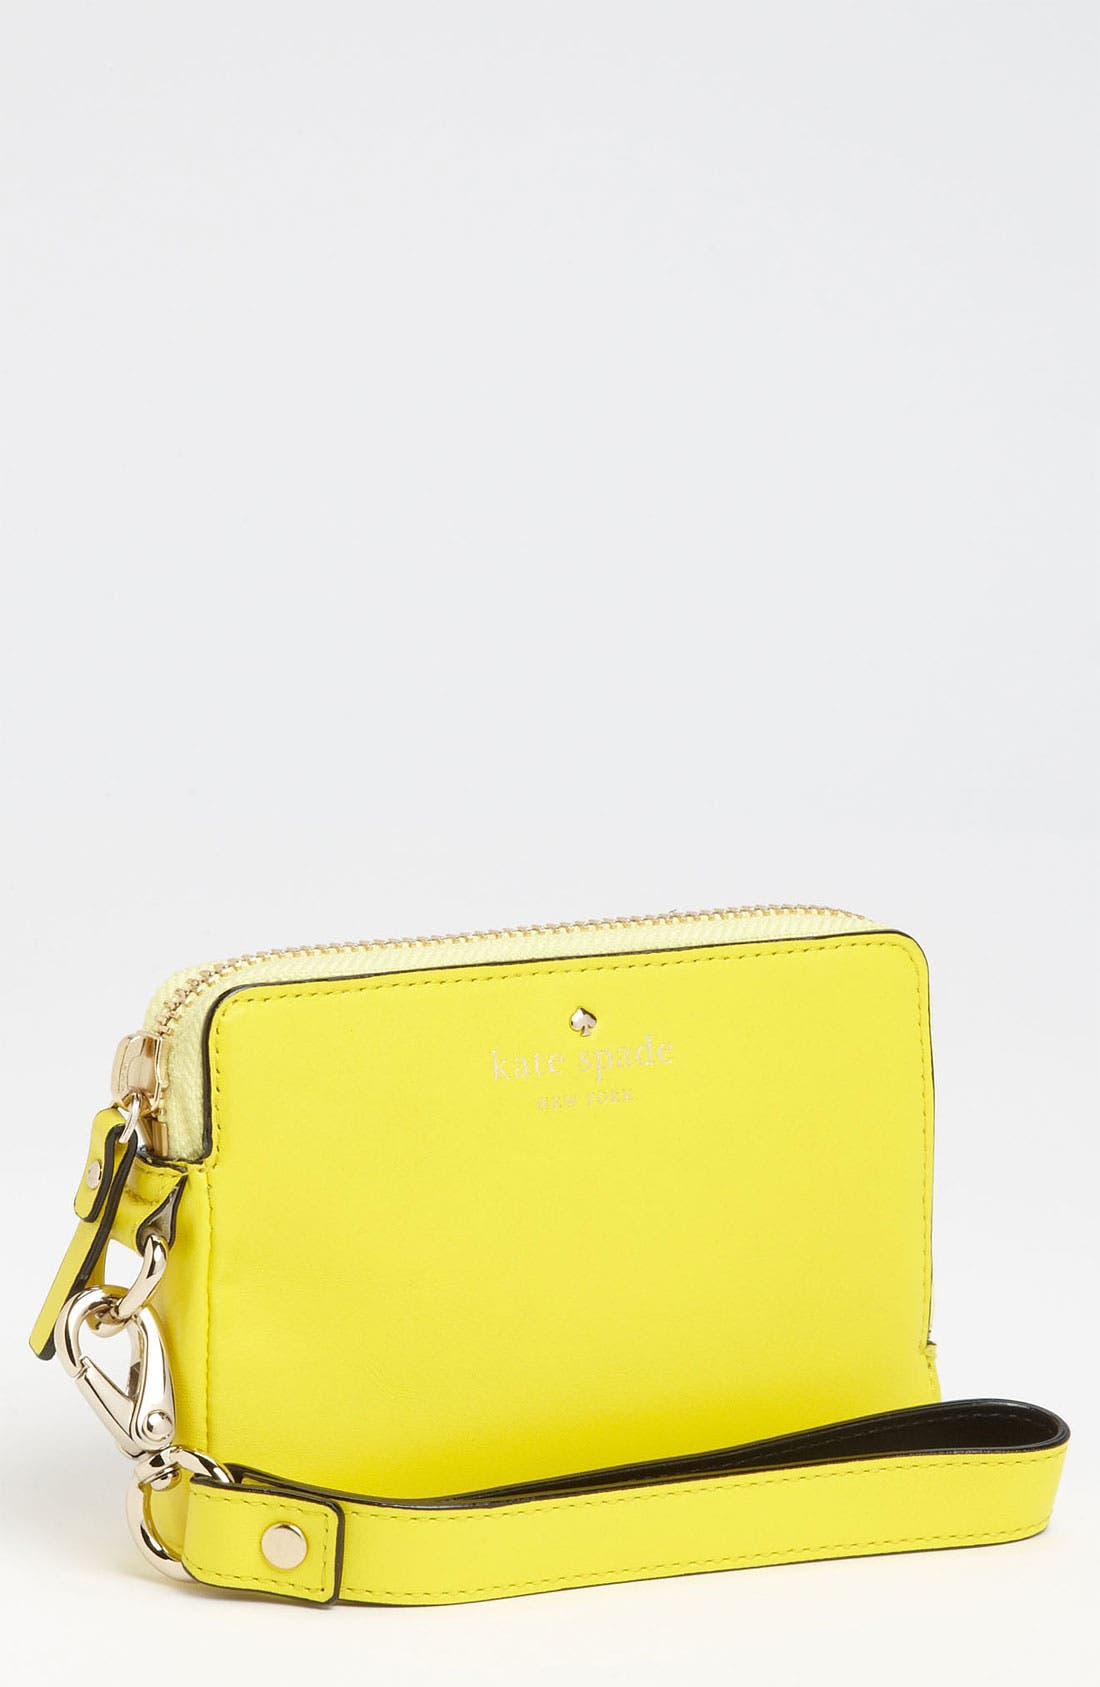 Main Image - kate spade new york 'julia' wristlet